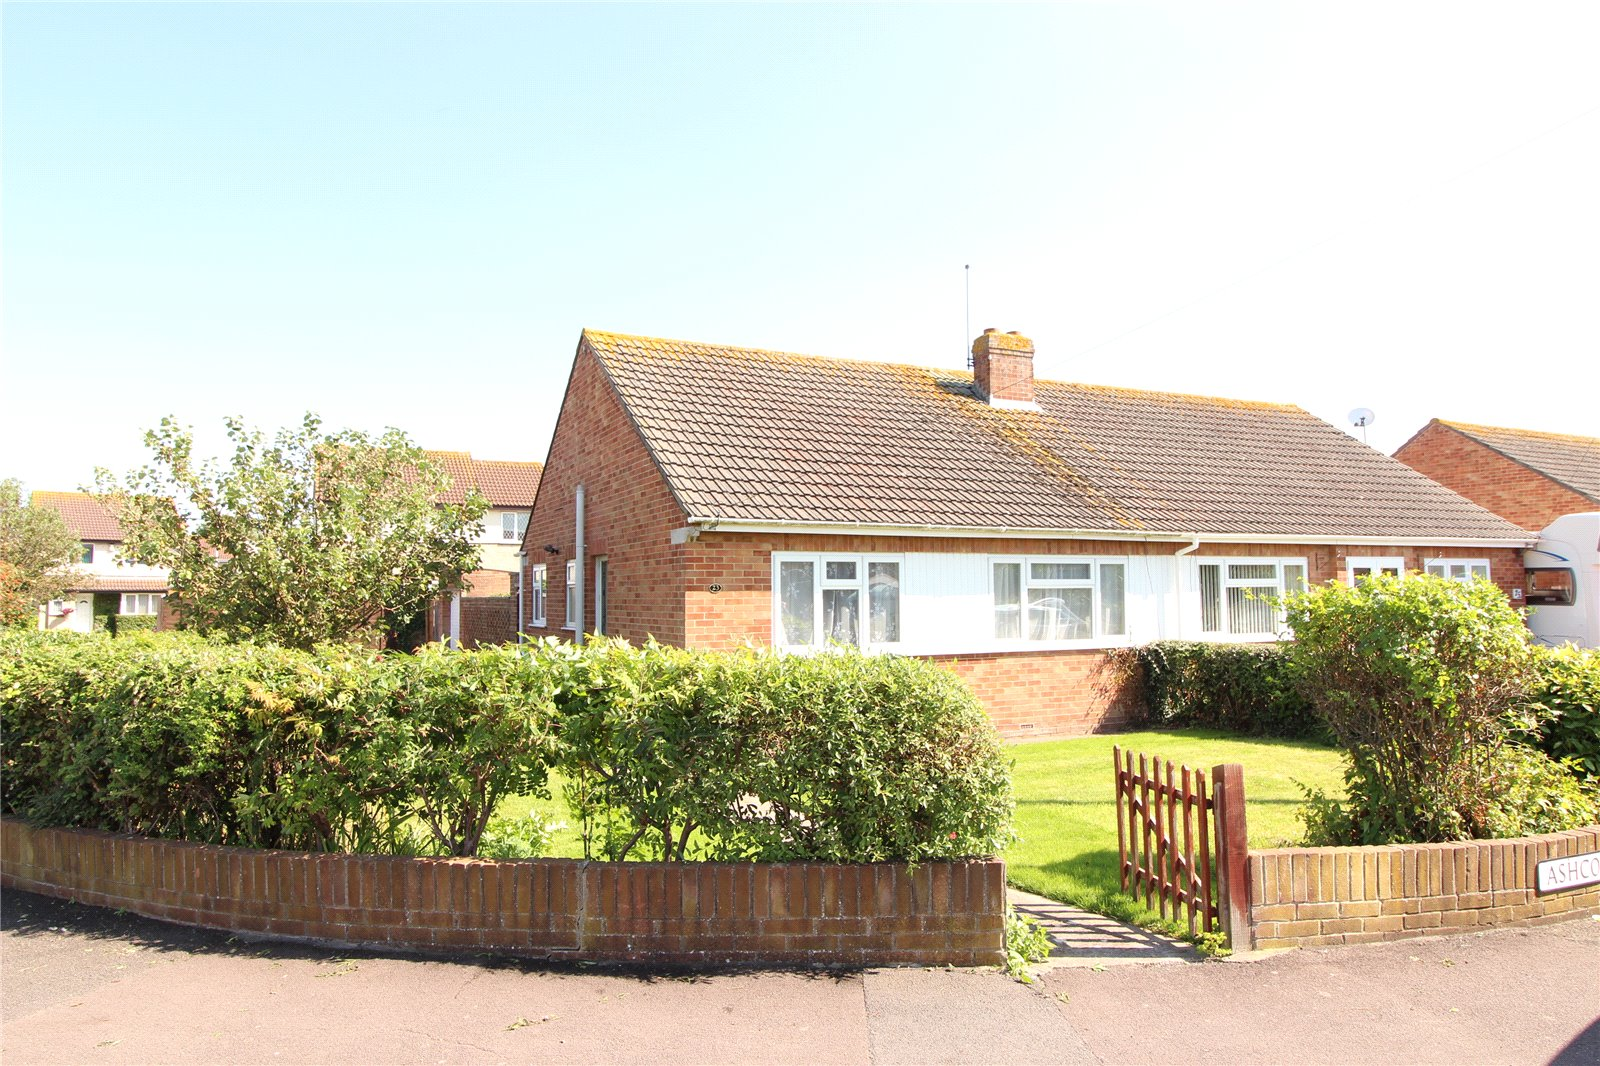 2 Bedrooms Bungalow for sale in Ashcott Drive Burnham on Sea Somerset TA8